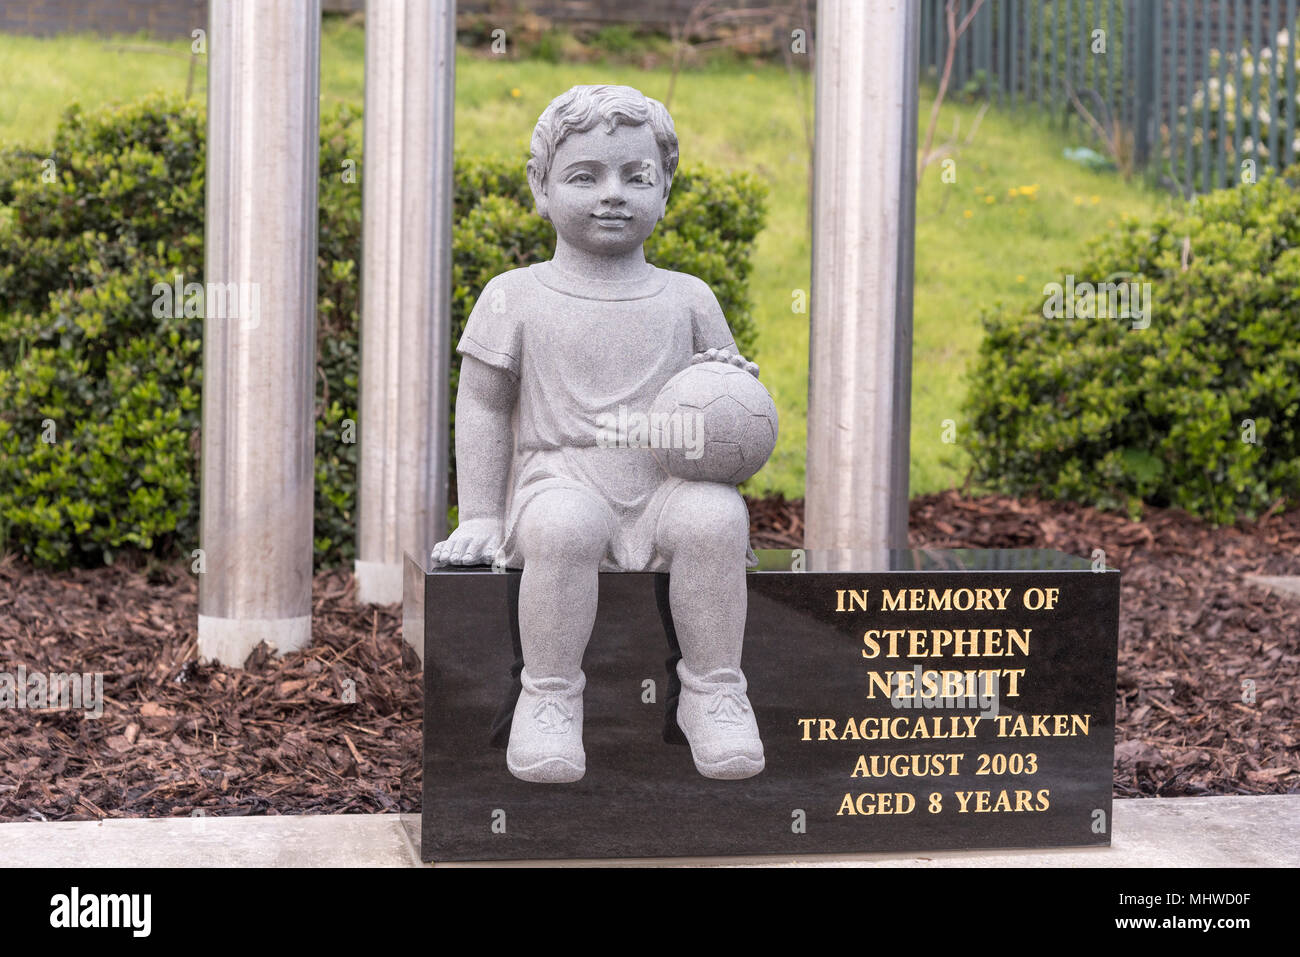 Football-mad Stephen Nesbitt tragically died after stepping on a live rail near Bootle Oriel Road station back in 2003. THe boy with the ball statue. - Stock Image